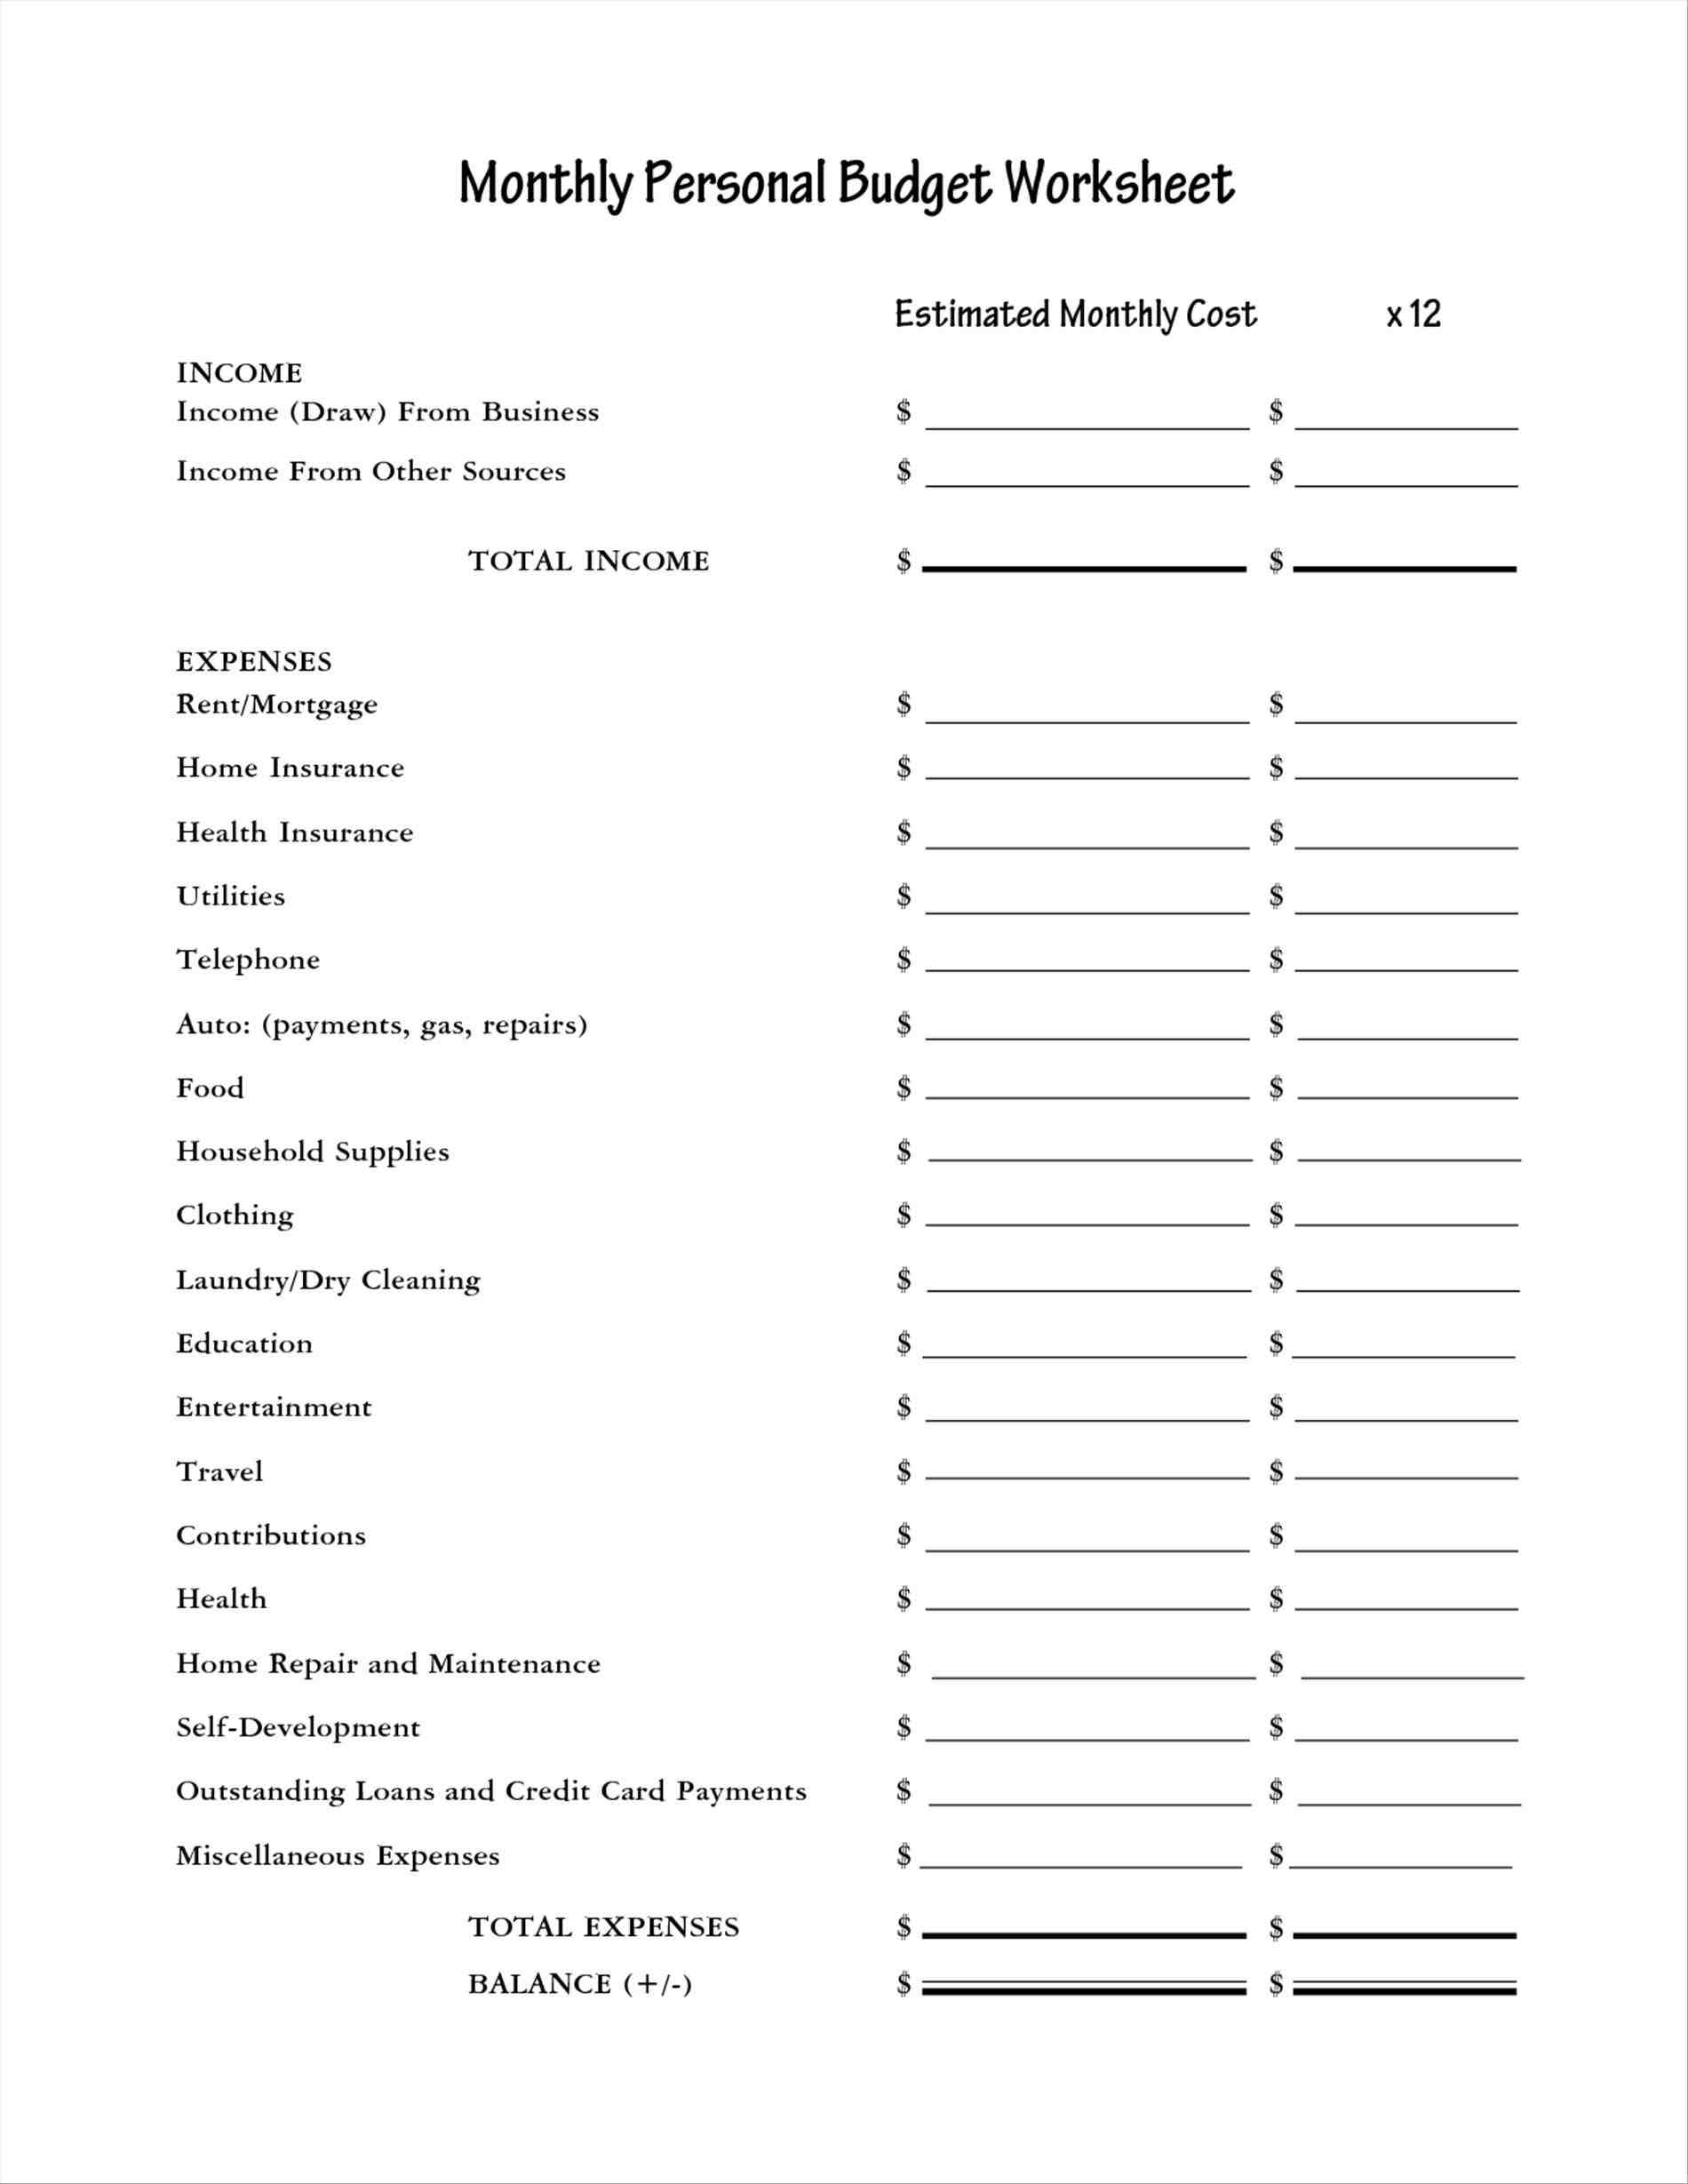 Family Monthly Expense Calculator Worksheet